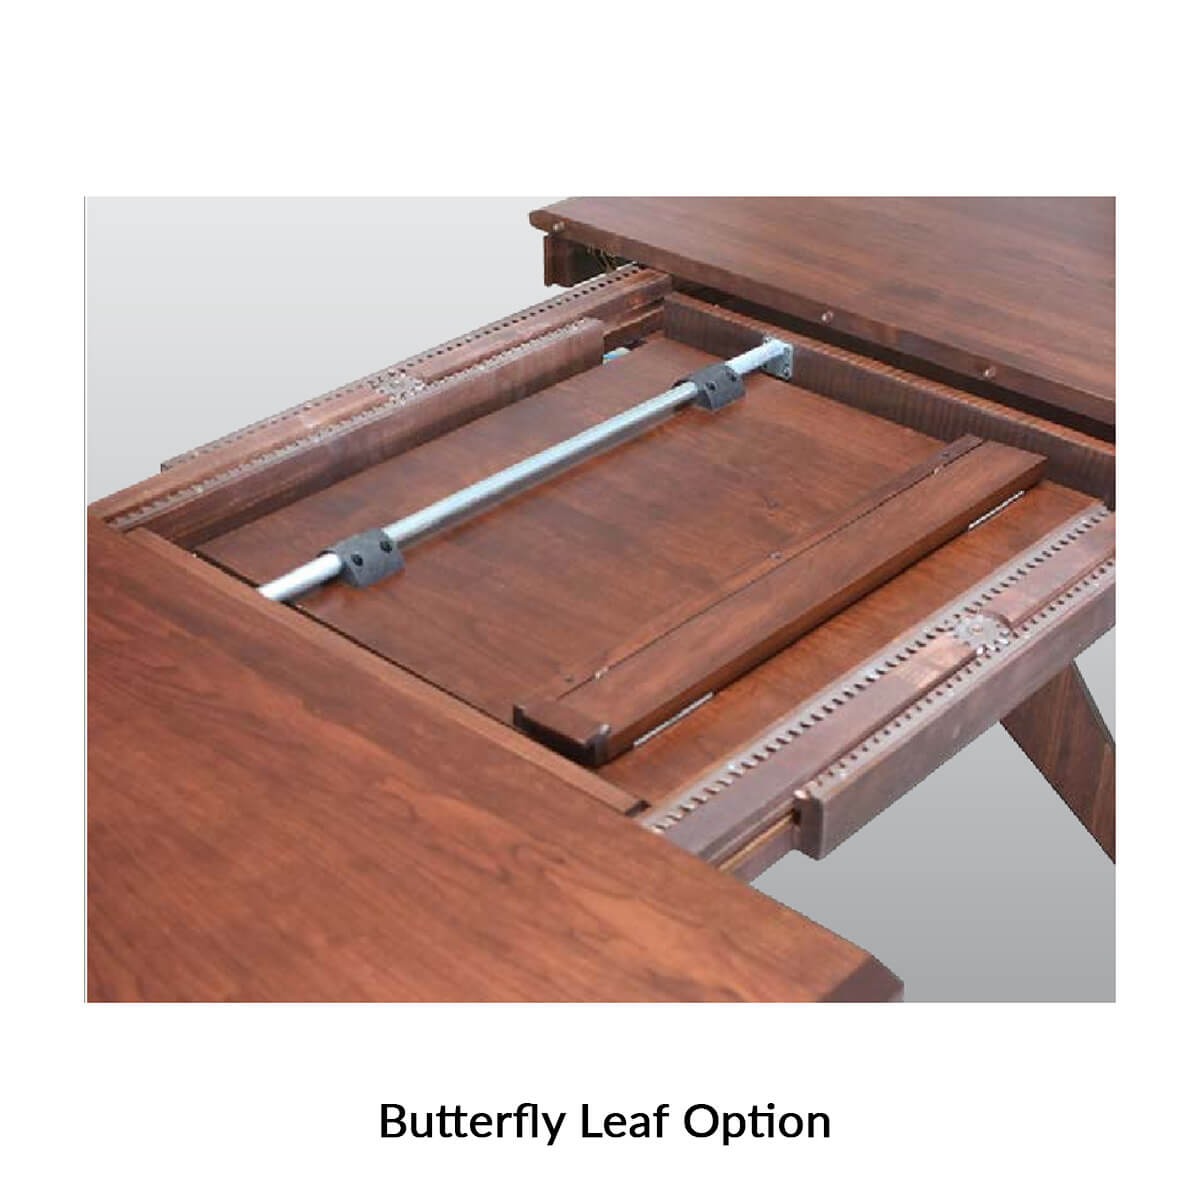 3.0-butterfly-leaf-options.jpg